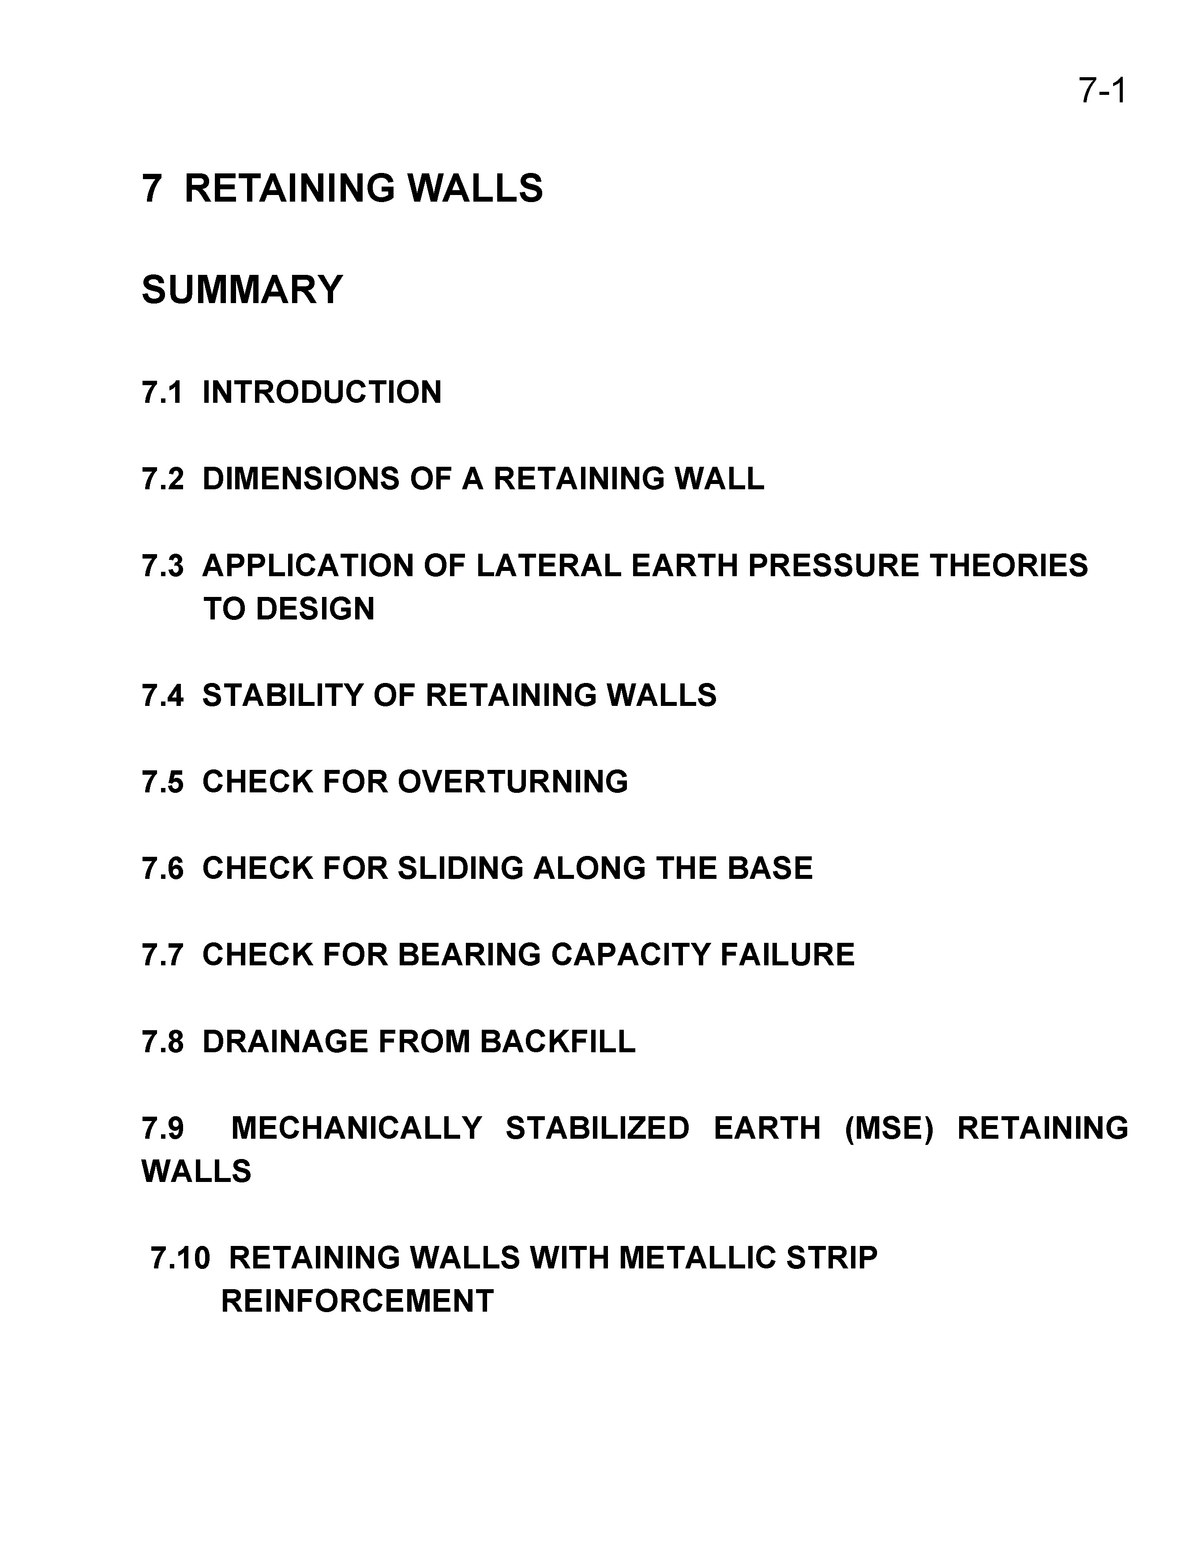 Engi 3433 Ch7 Lecture Notes 7 Engineering 3436 Lu Studocu